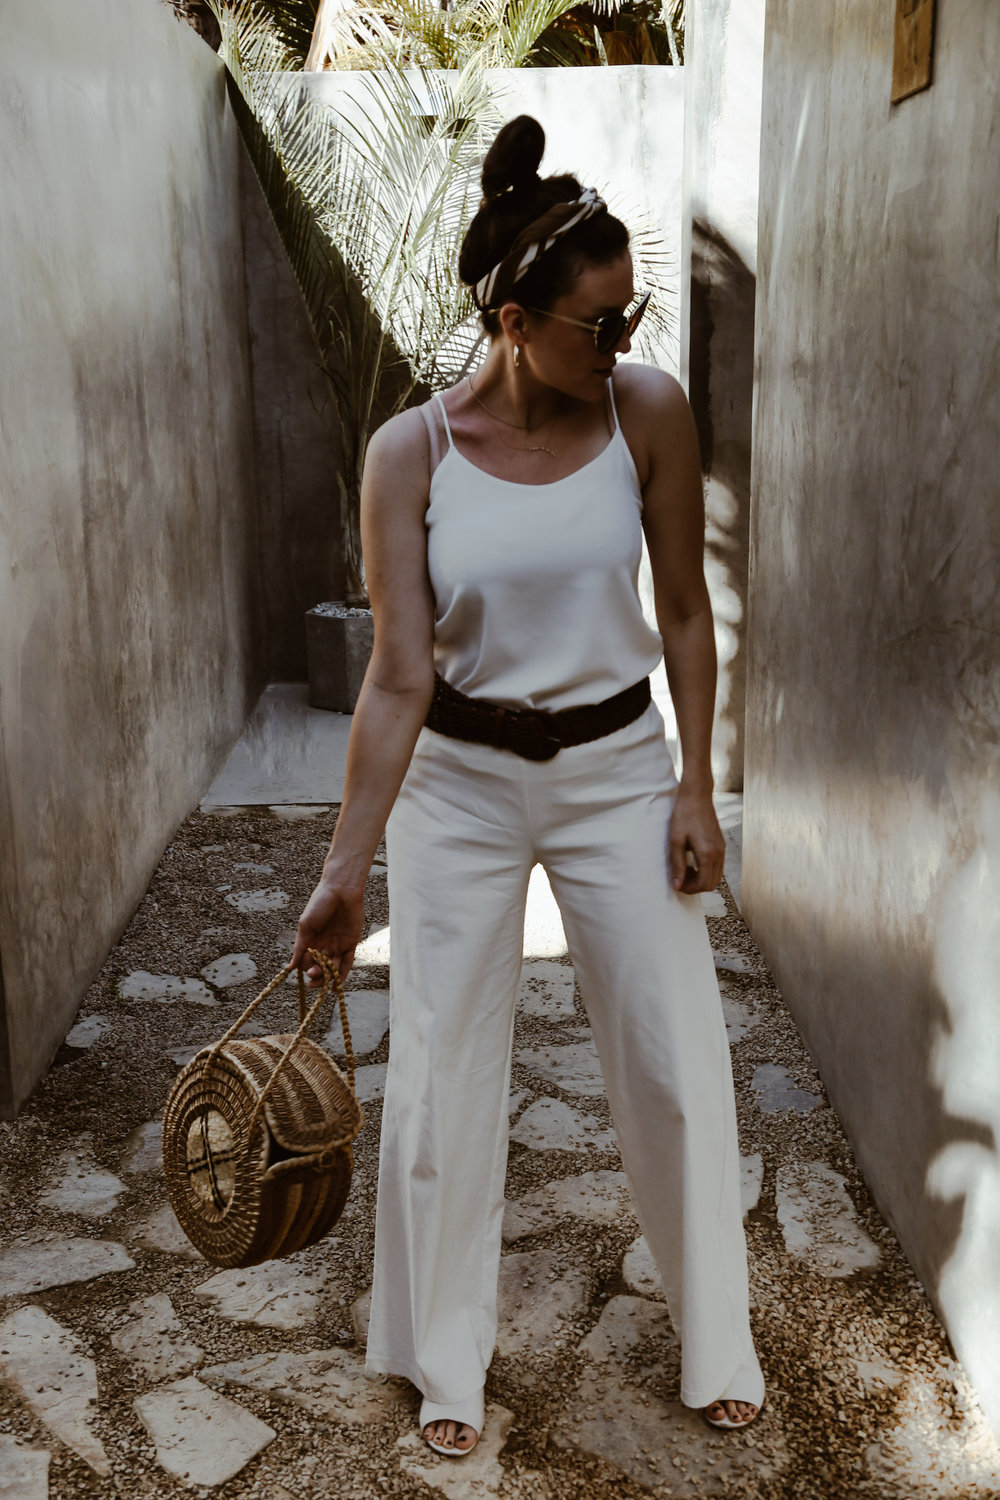 resort-wear-outfit-ideas-for-summer-vacation1.jpg